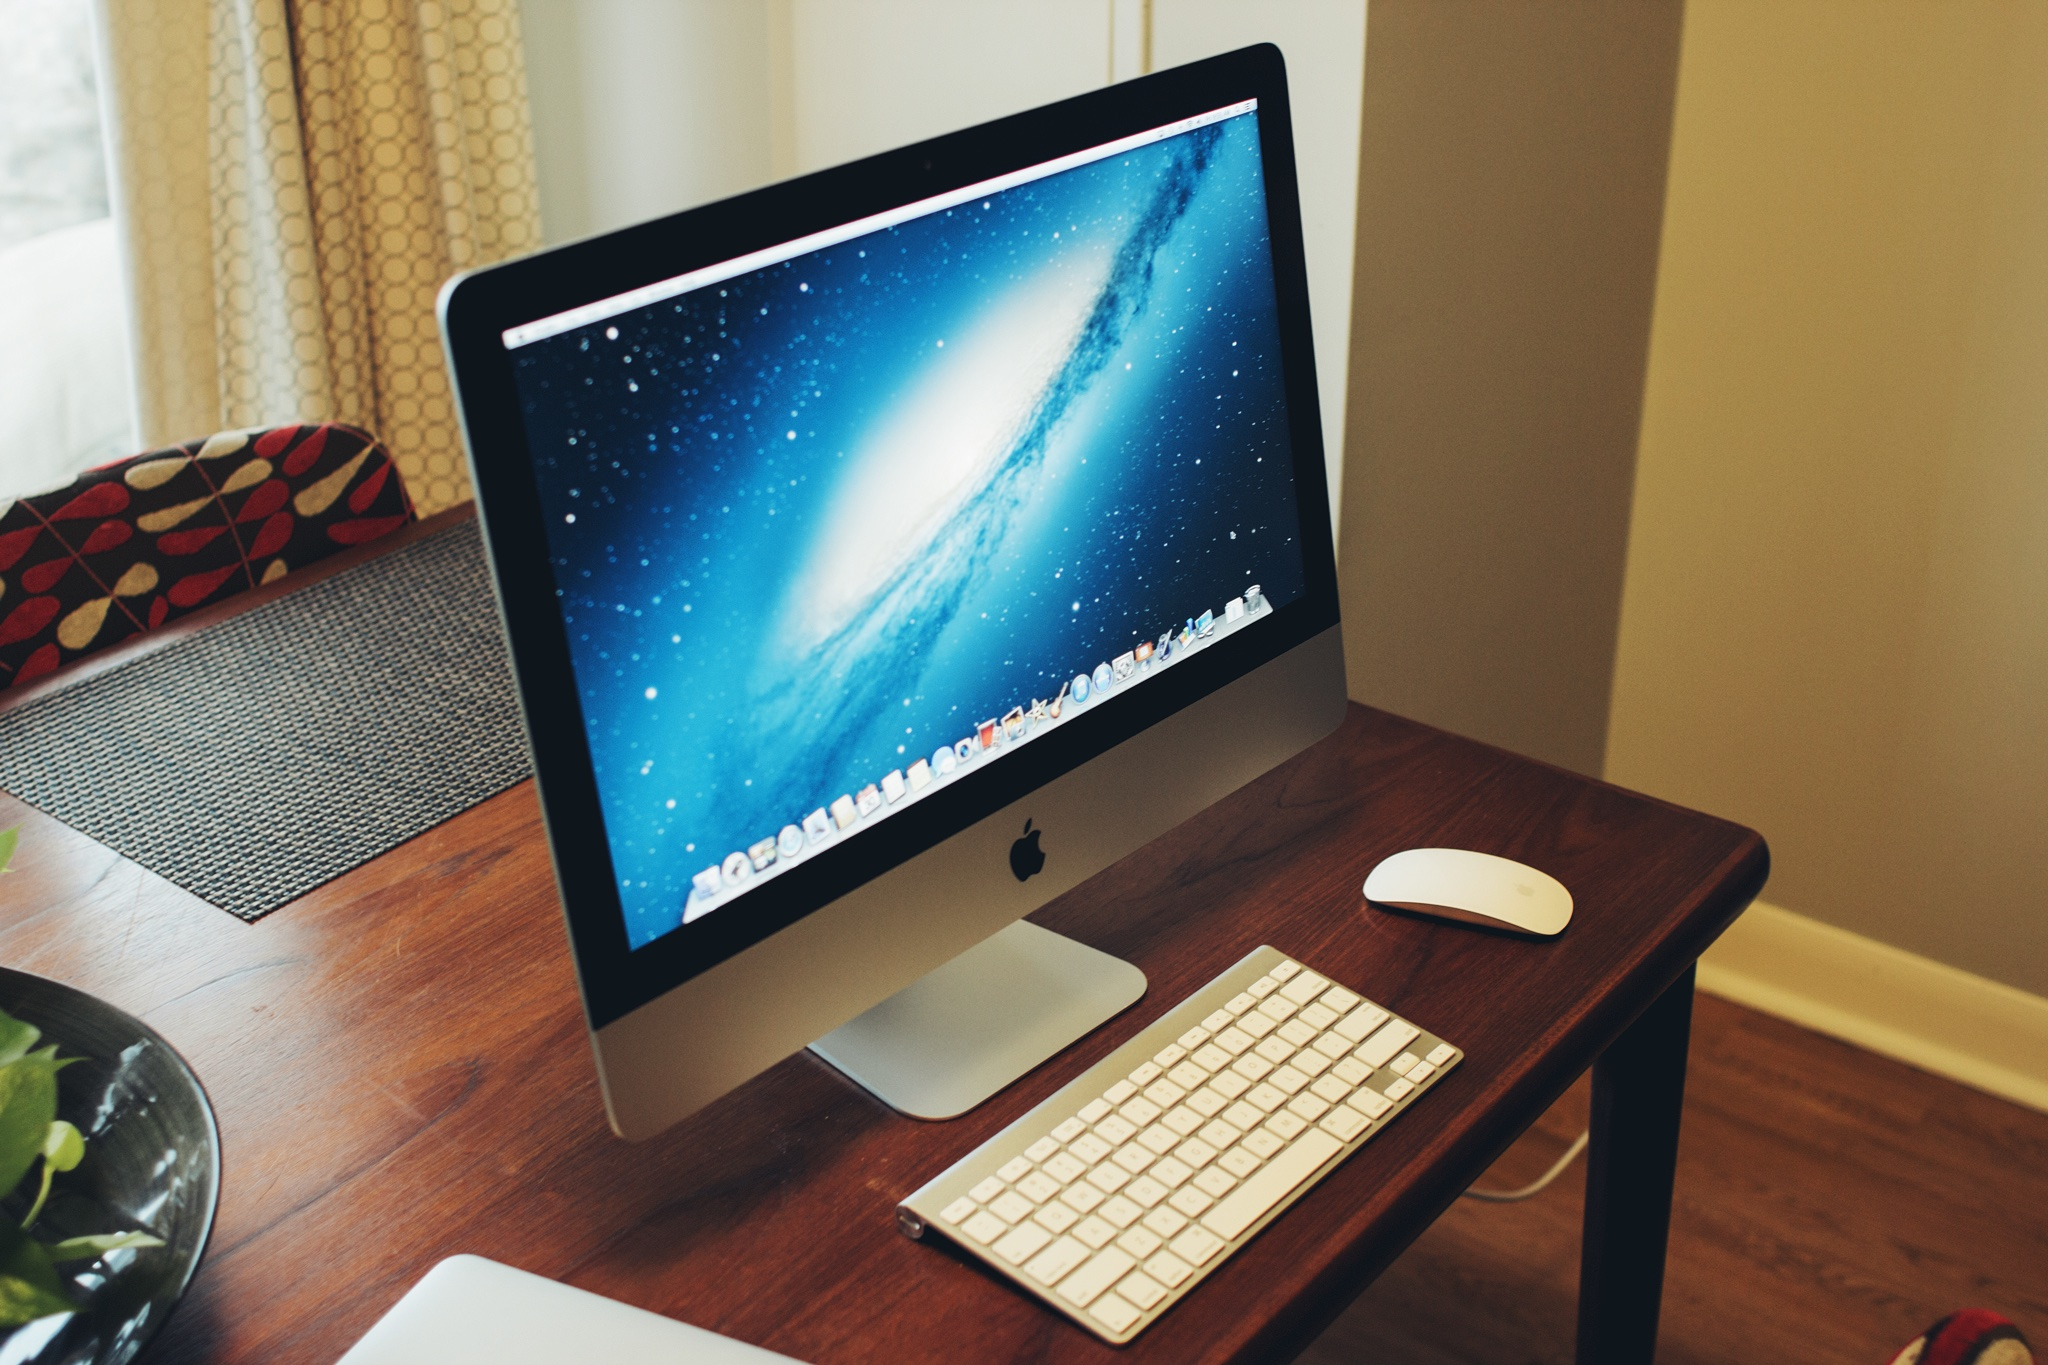 Apple will repair iMac late 2012 until 2021